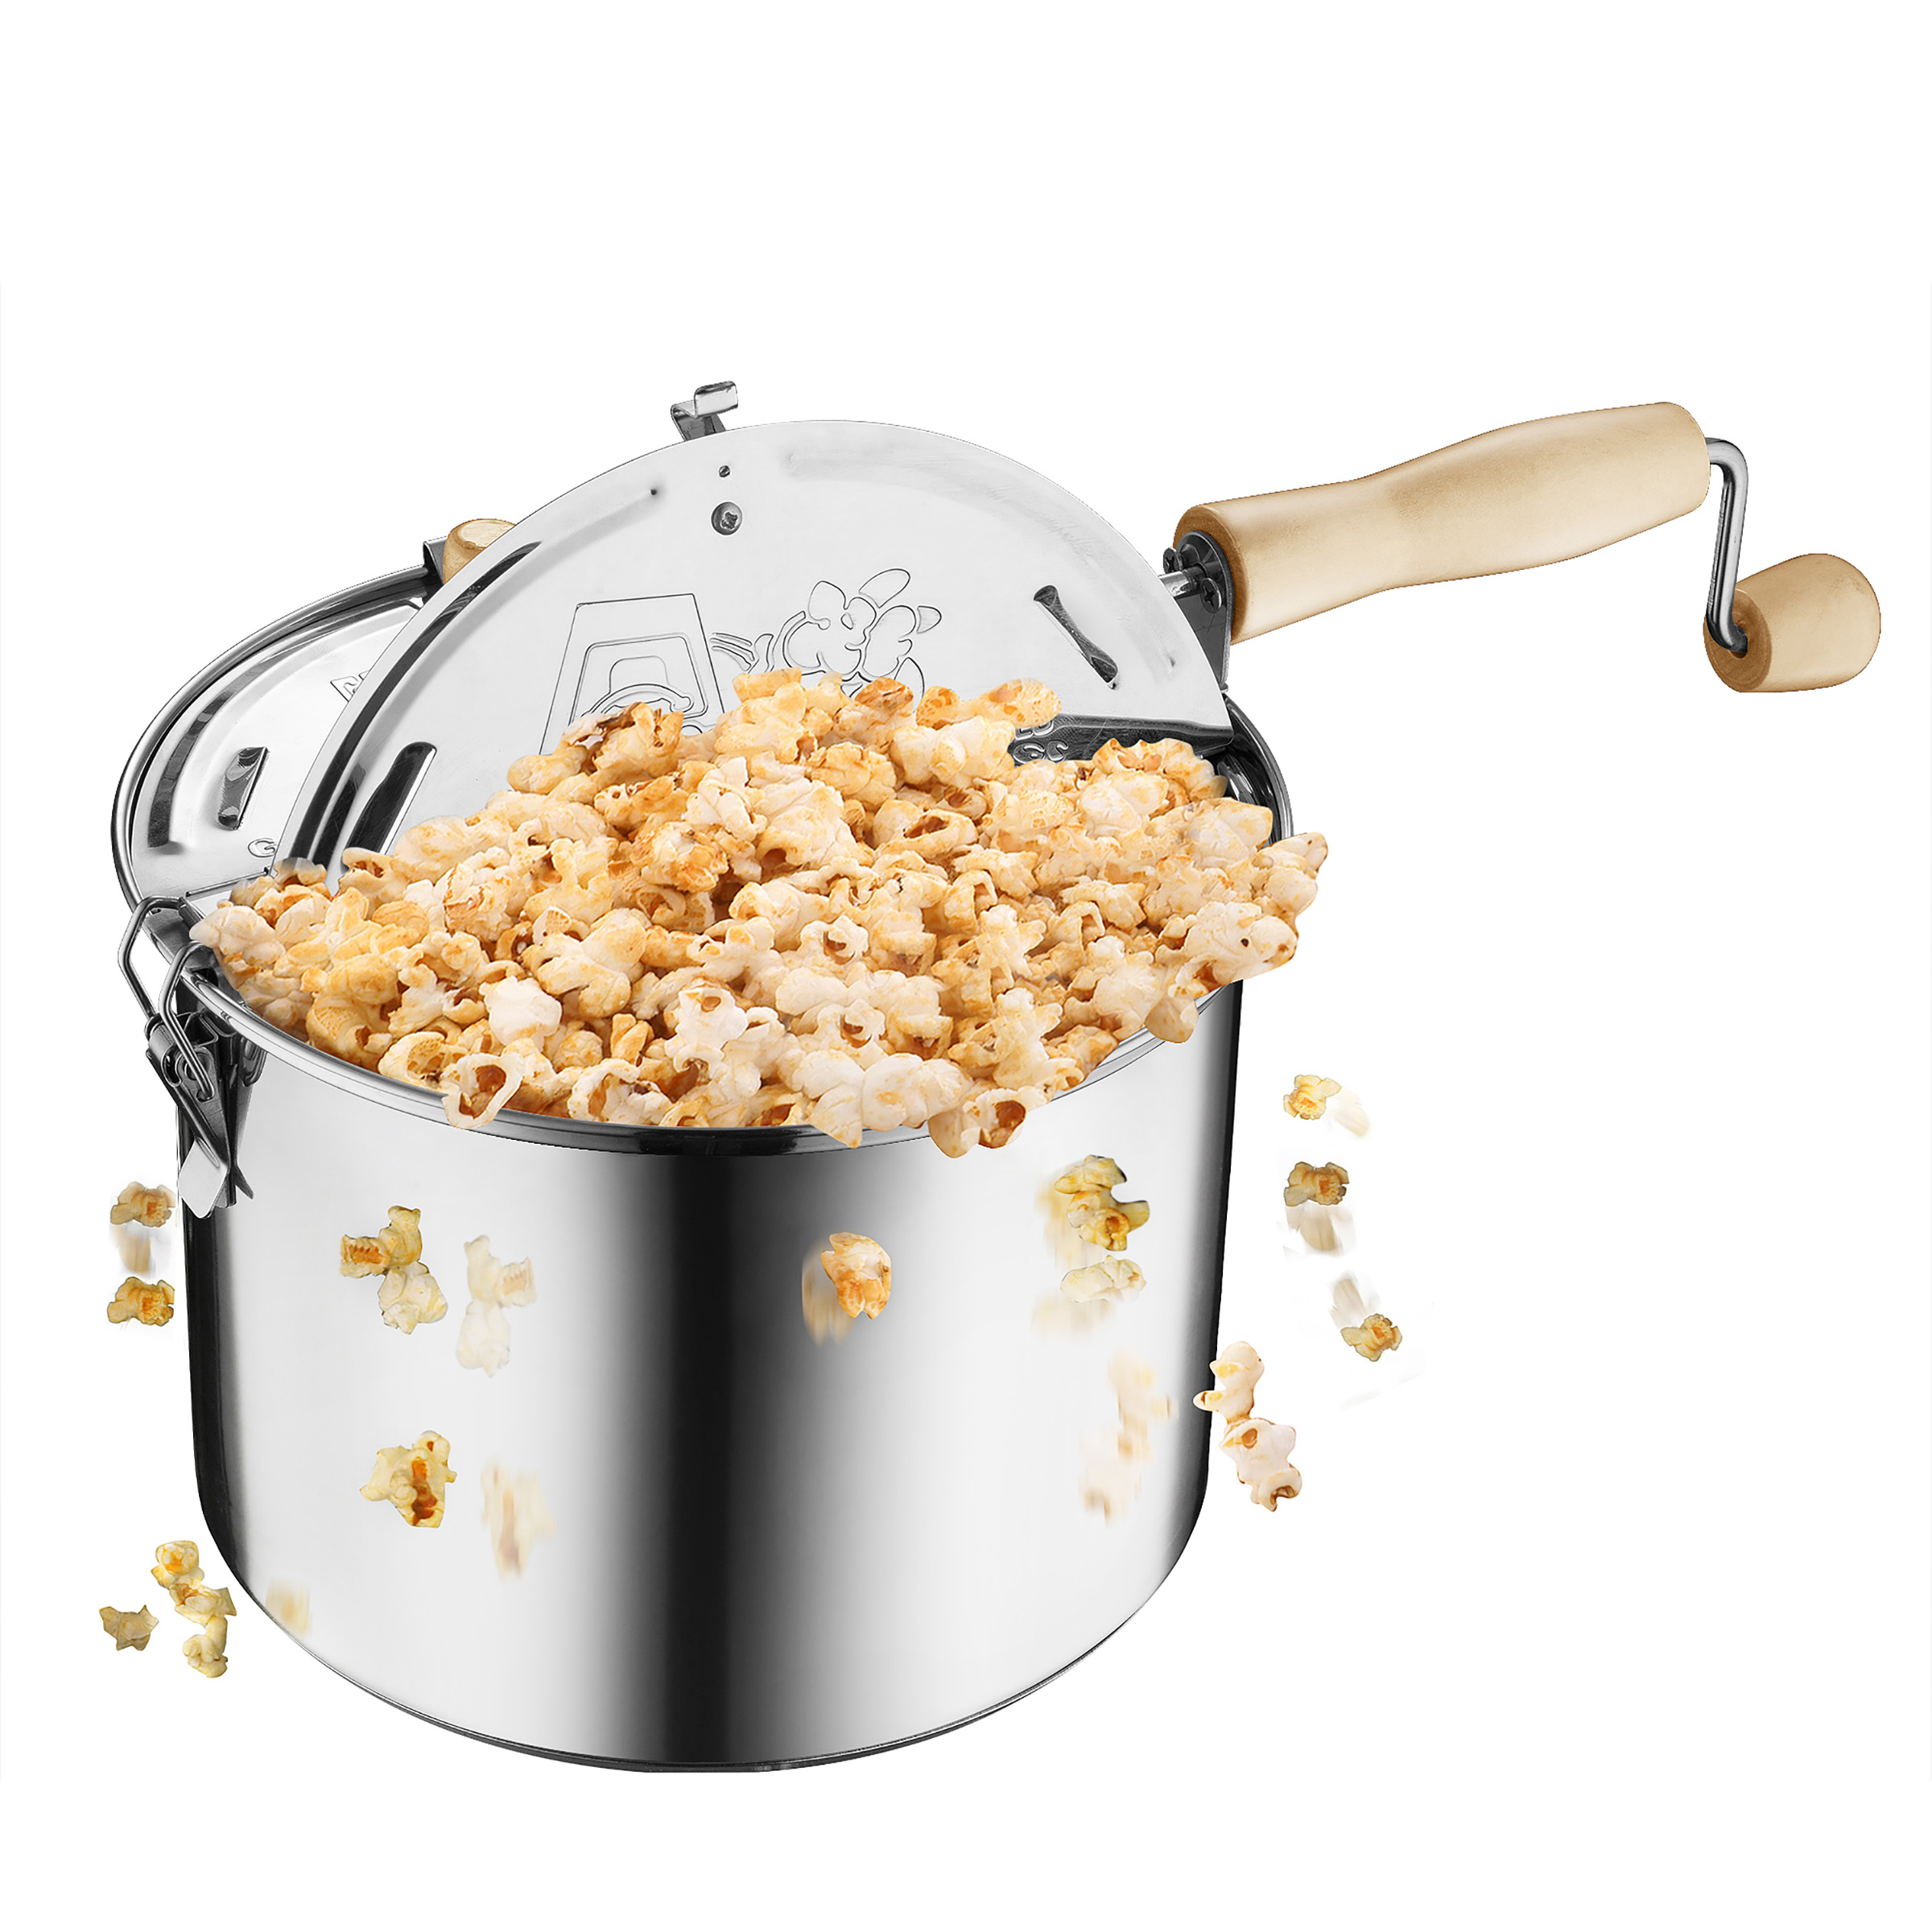 Original Stainless Steel Stove Top 6 1/2 Quart Popcorn Popper by Great Northern Popcorn